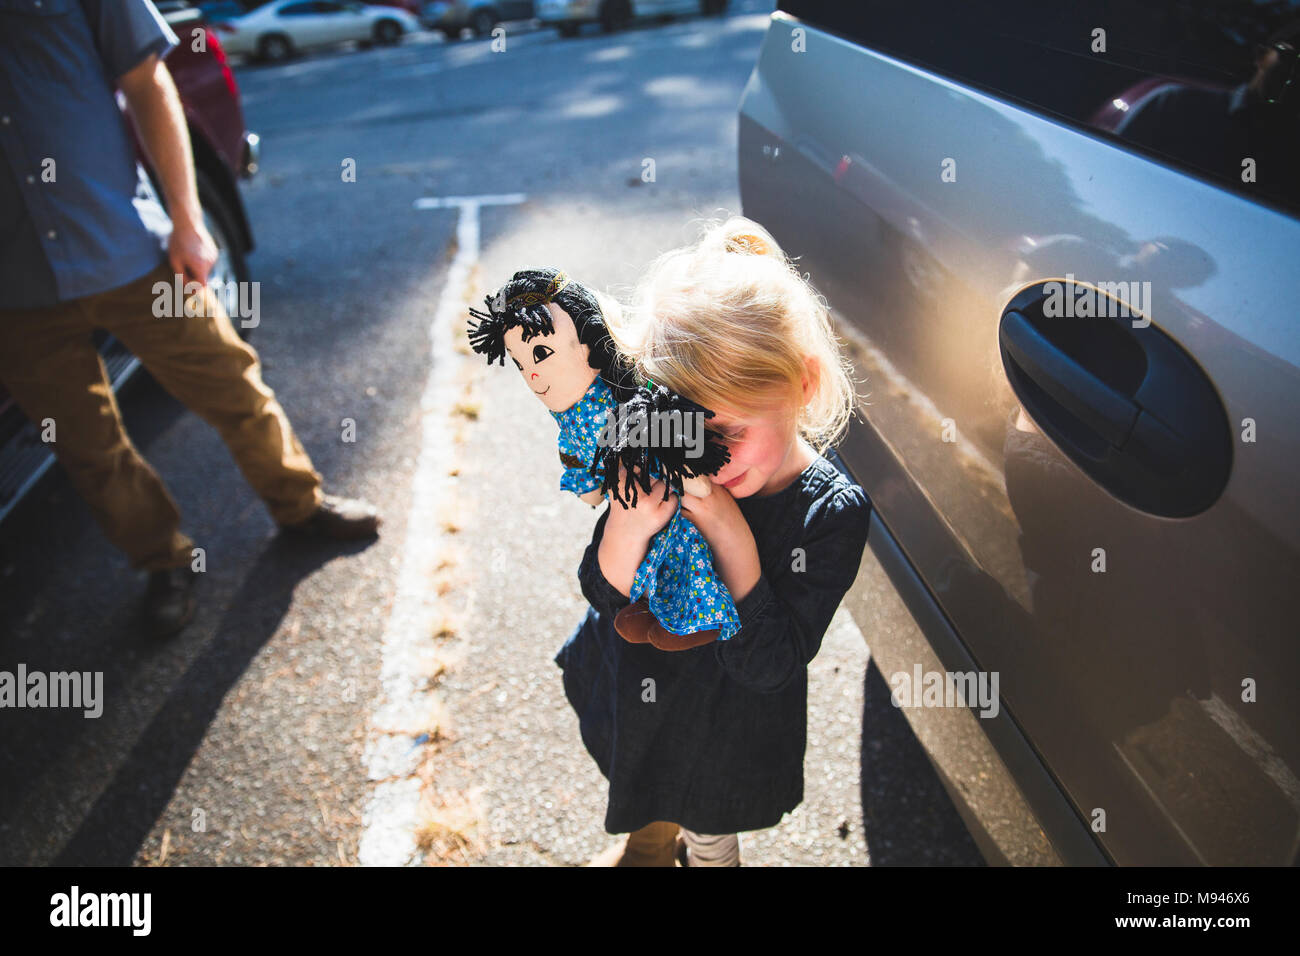 Girl hiding behind doll - Stock Image